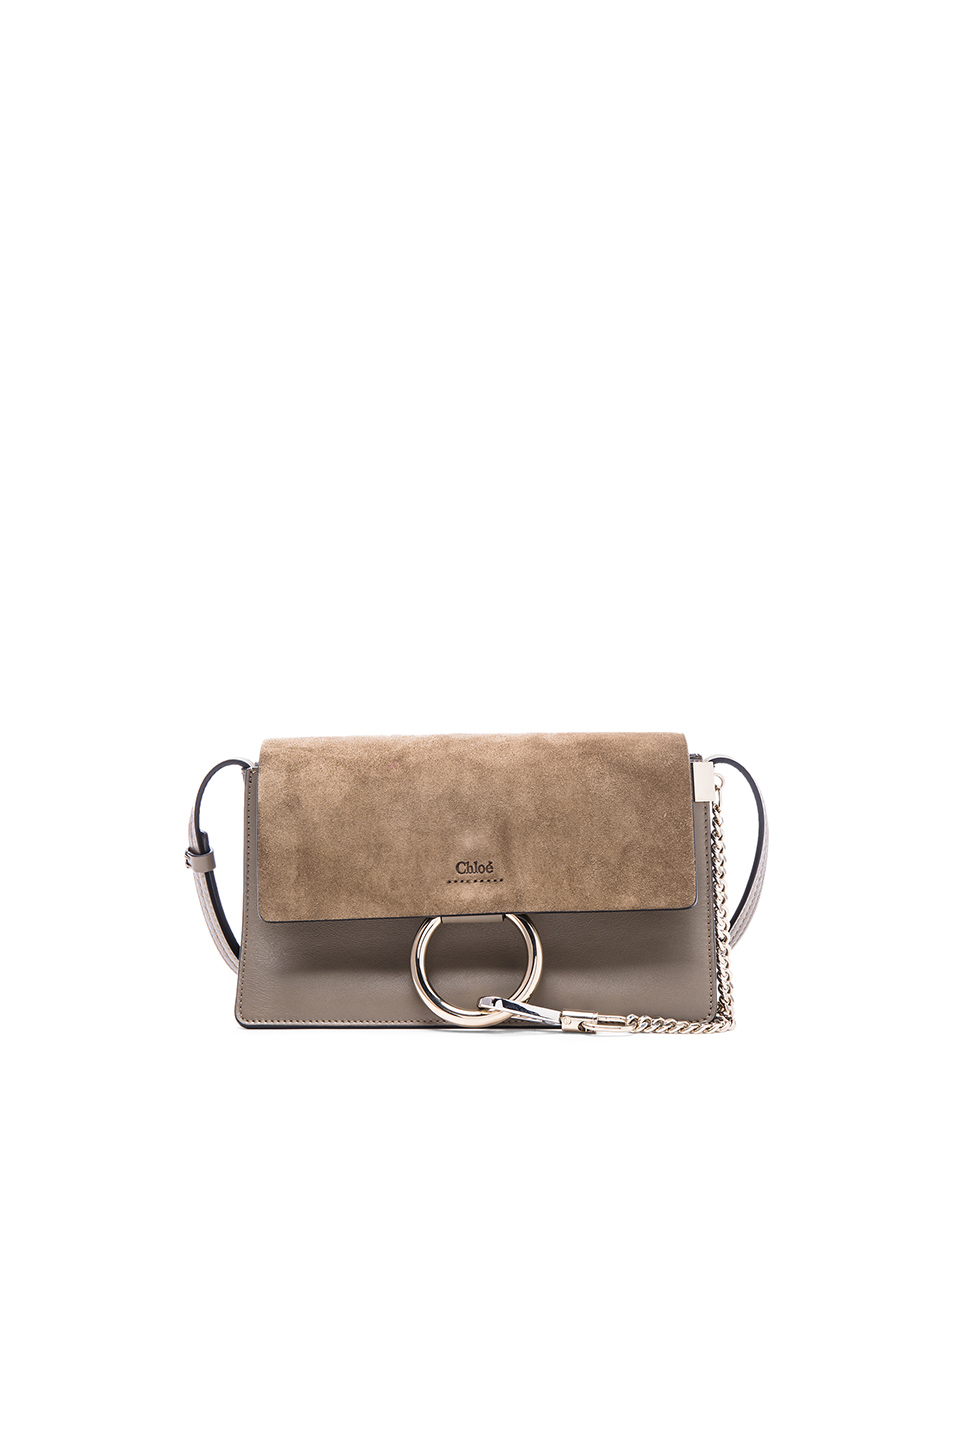 DREW BAG IN MULTICOLOR SUEDE CALFSKIN PATCHWORK & SMOOTH CALFSKIN